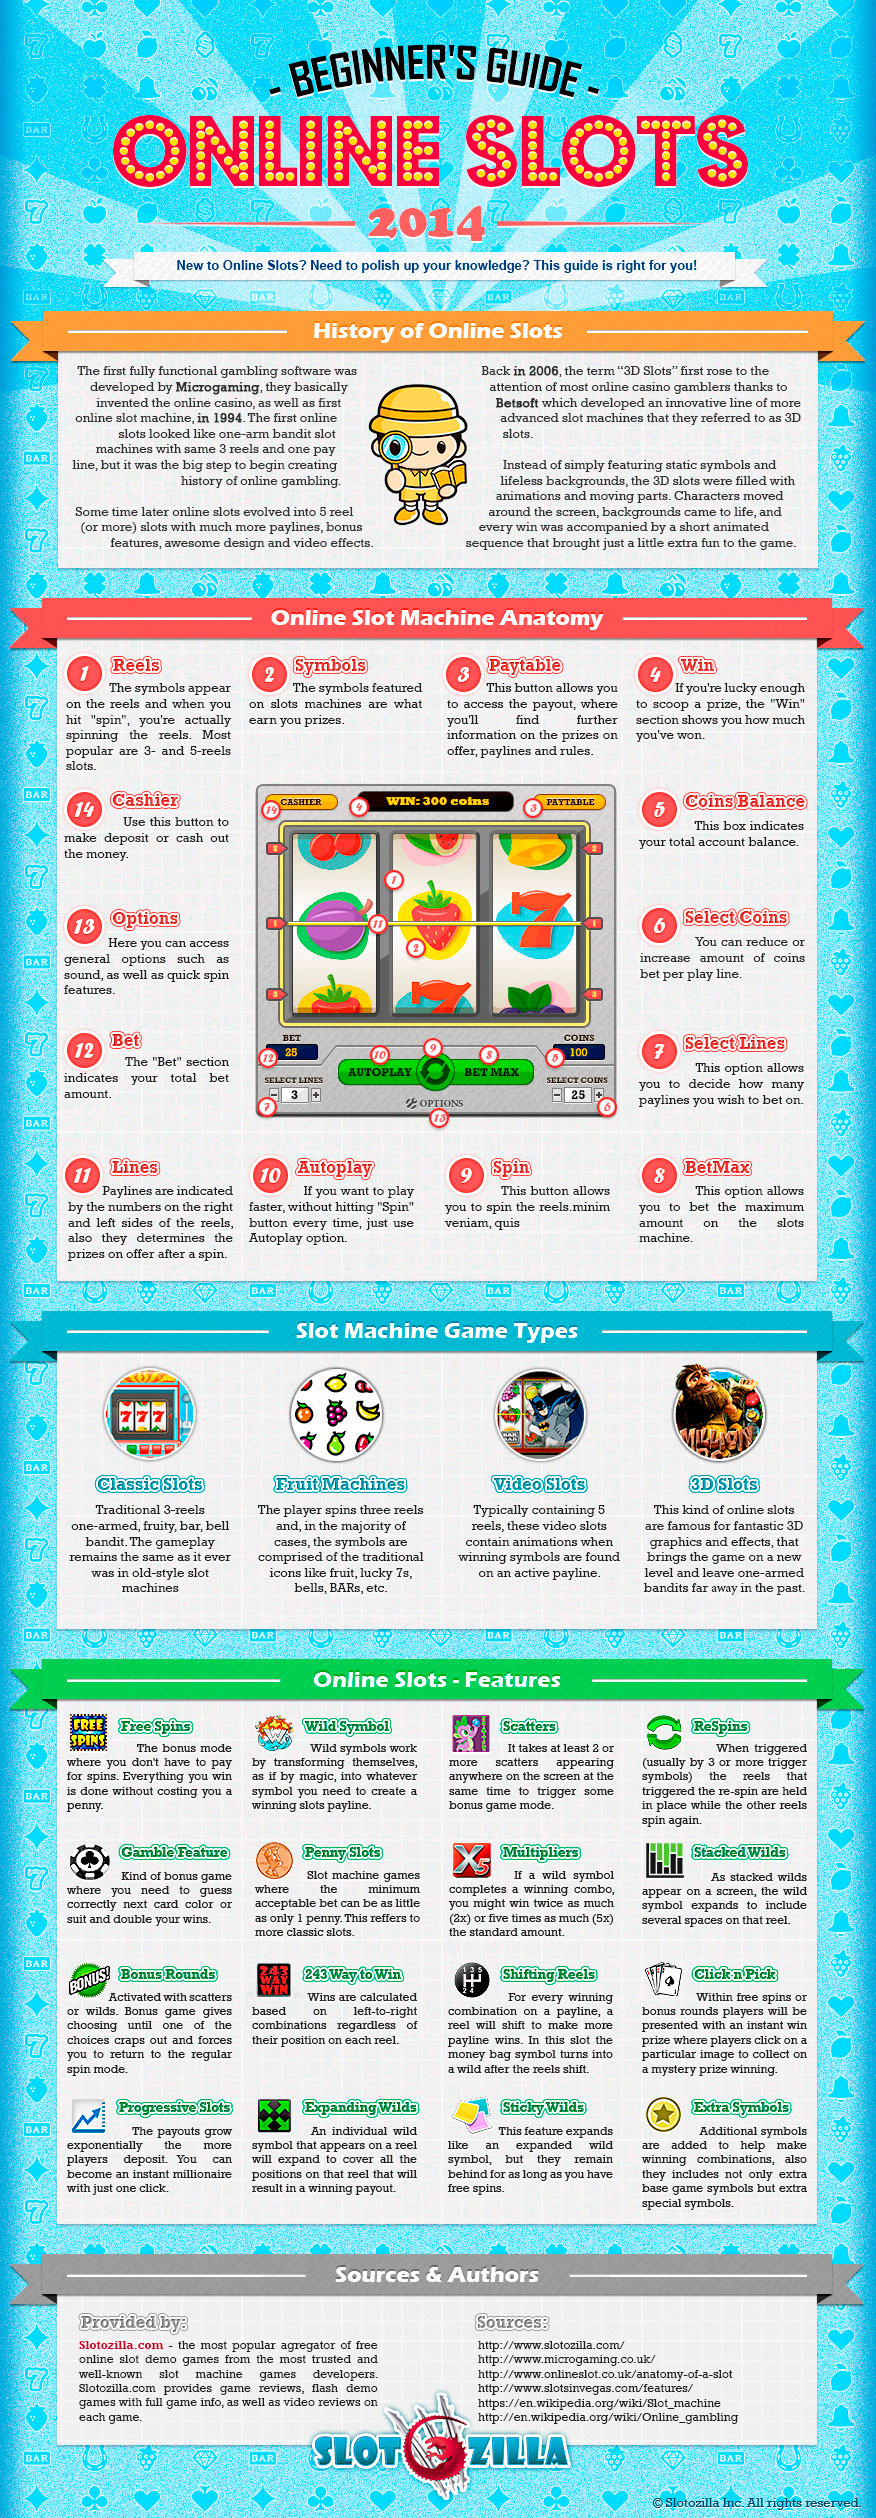 Infographic : Online Slots Beginner's Guide by Slotozilla